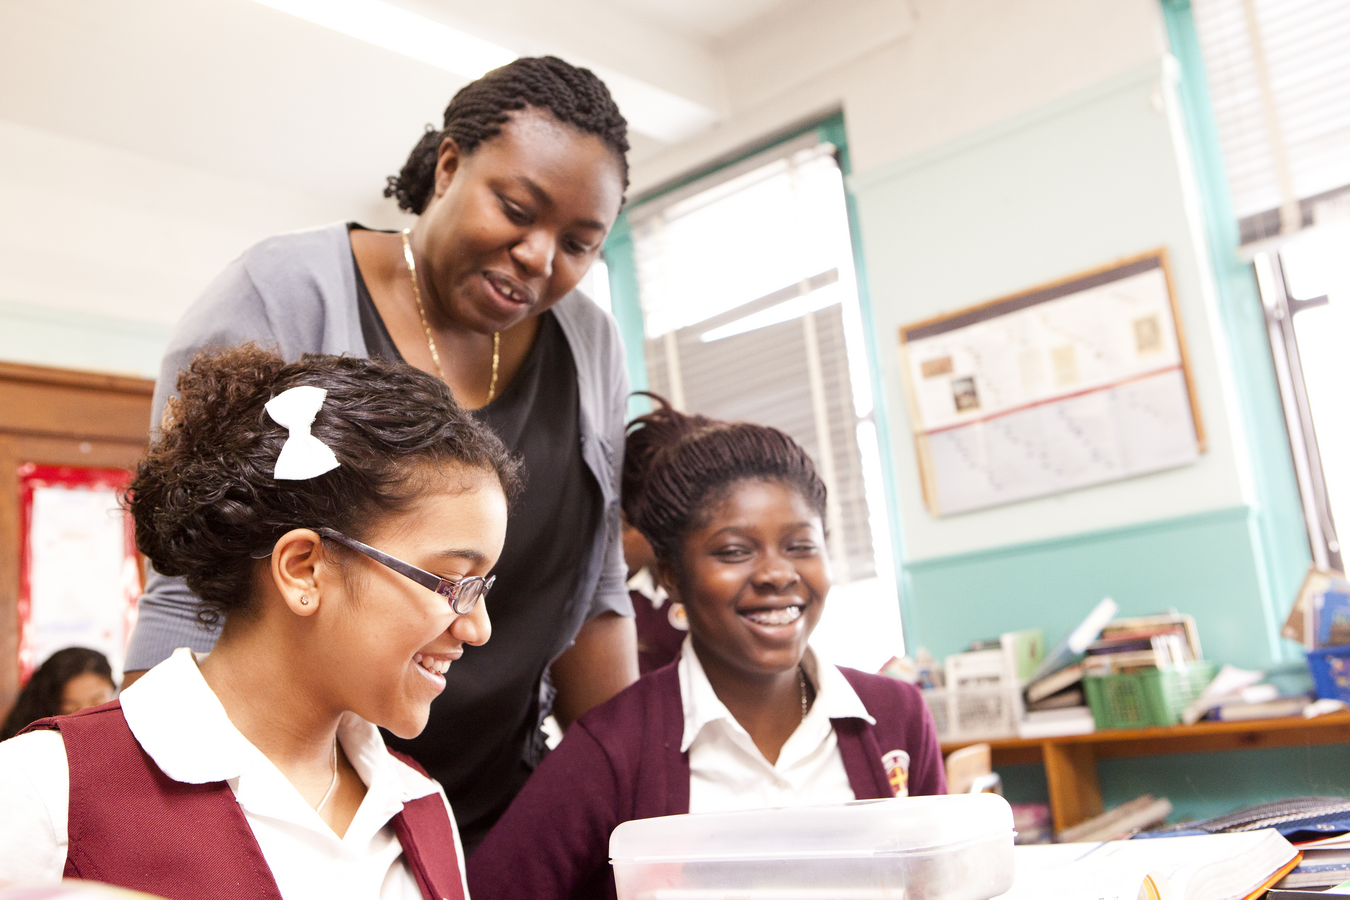 At Sacred Heart School in the Bronx, the principal Abigail Akano encourages teachers to take ownership of their students' academic achievement. (Photo: Partnership Schools)